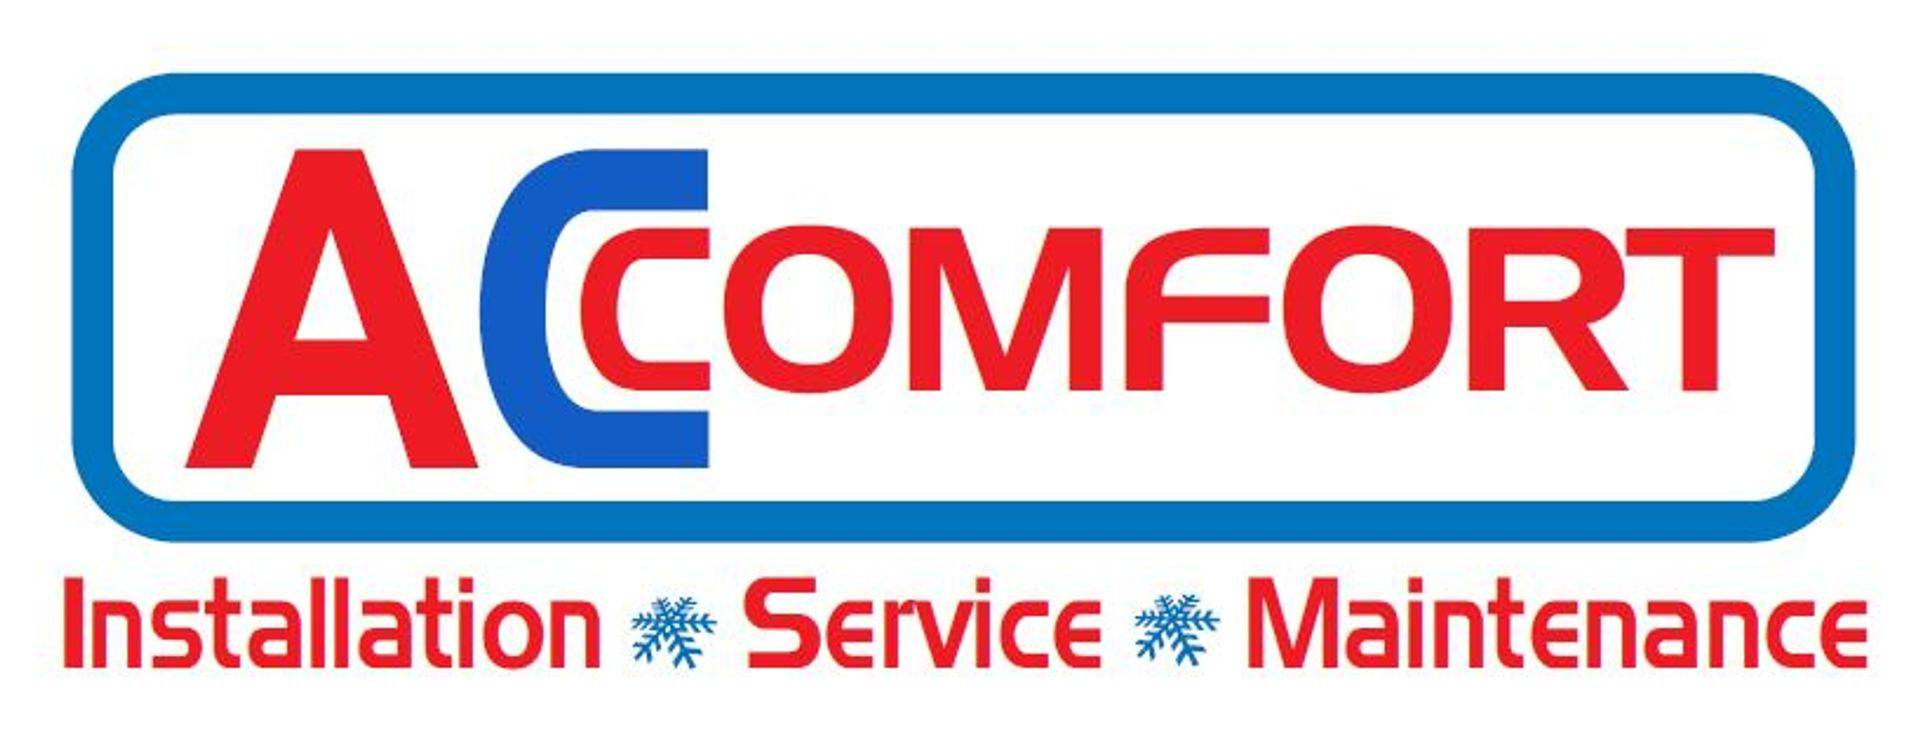 Air Conditioning & Heating Installation, Repair and Service for Corona, Riverside, Norco, Jurupa Valley, Mira Loma, Chino Hills Furnace Installation, Service and Repairs – Commercial and Residential HVAC Contractors – Thermostat Repair, Commercial Air Conditioning & Heating HVAC Services